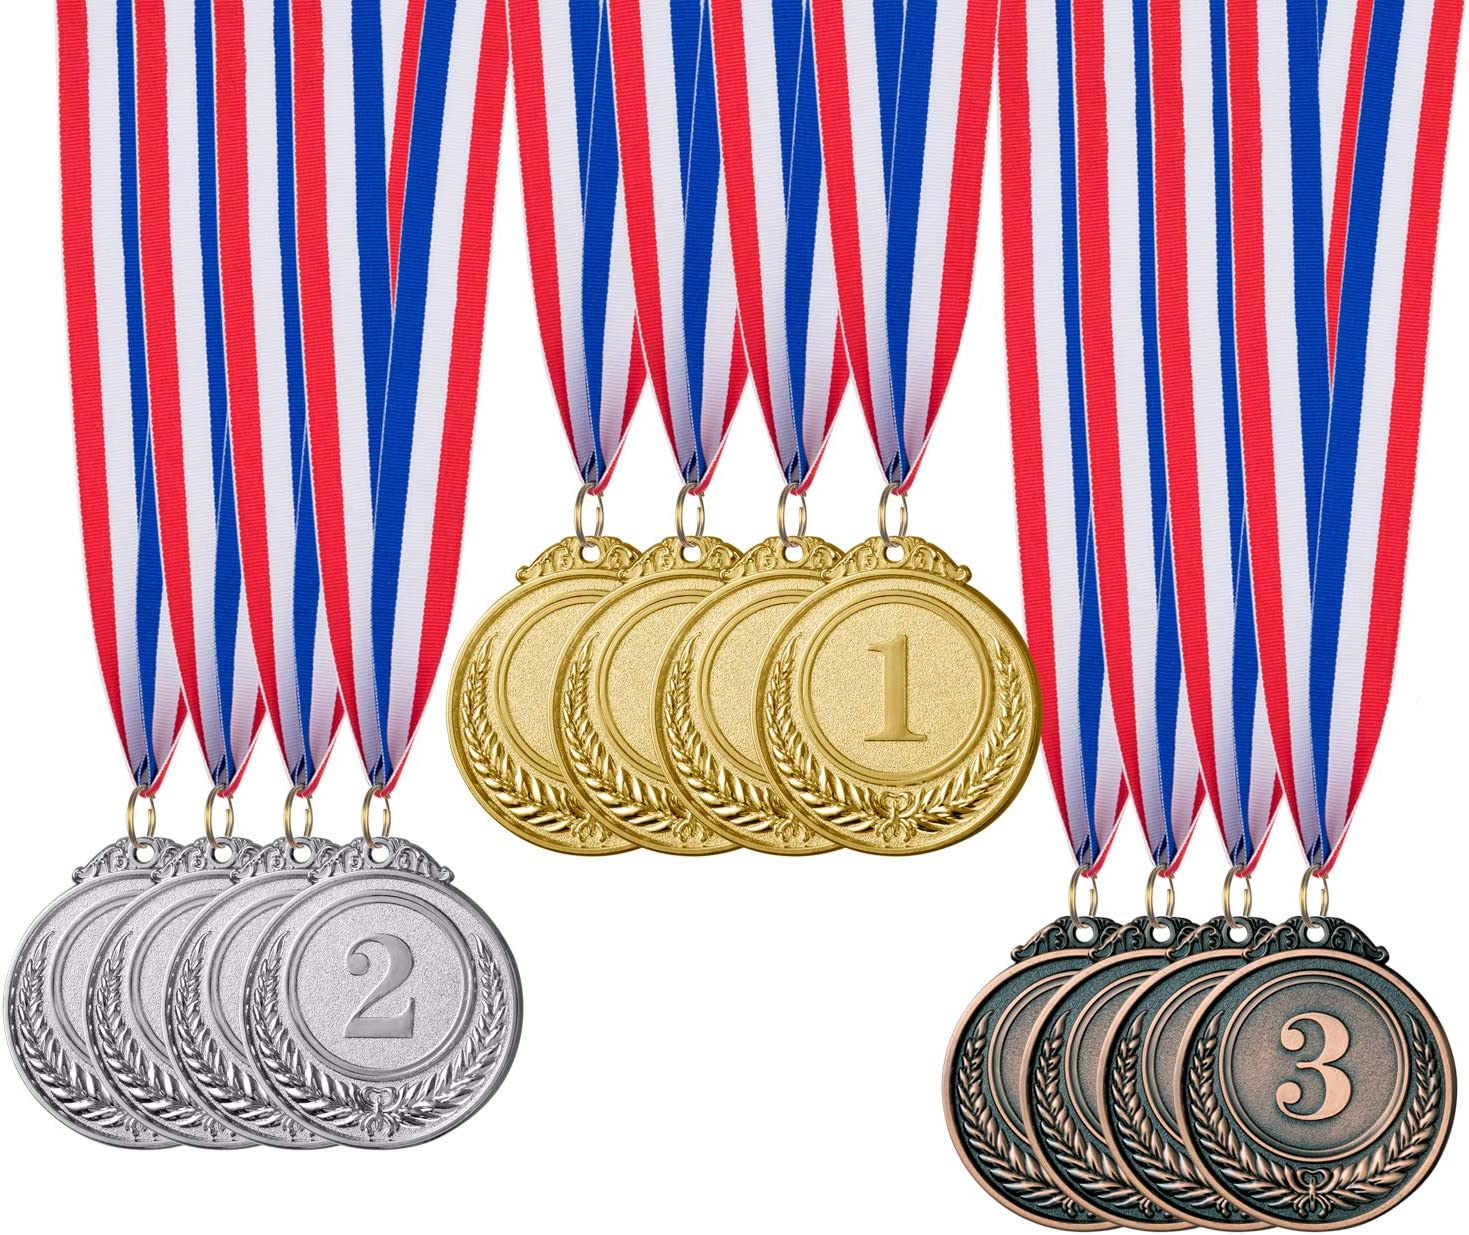 Favide 12 Pieces Gold Silver Bronze Award Medals-Winner Medals Gold Silver Bronze Prizes for Competitions, Party,Olympic Style, 2 Inches